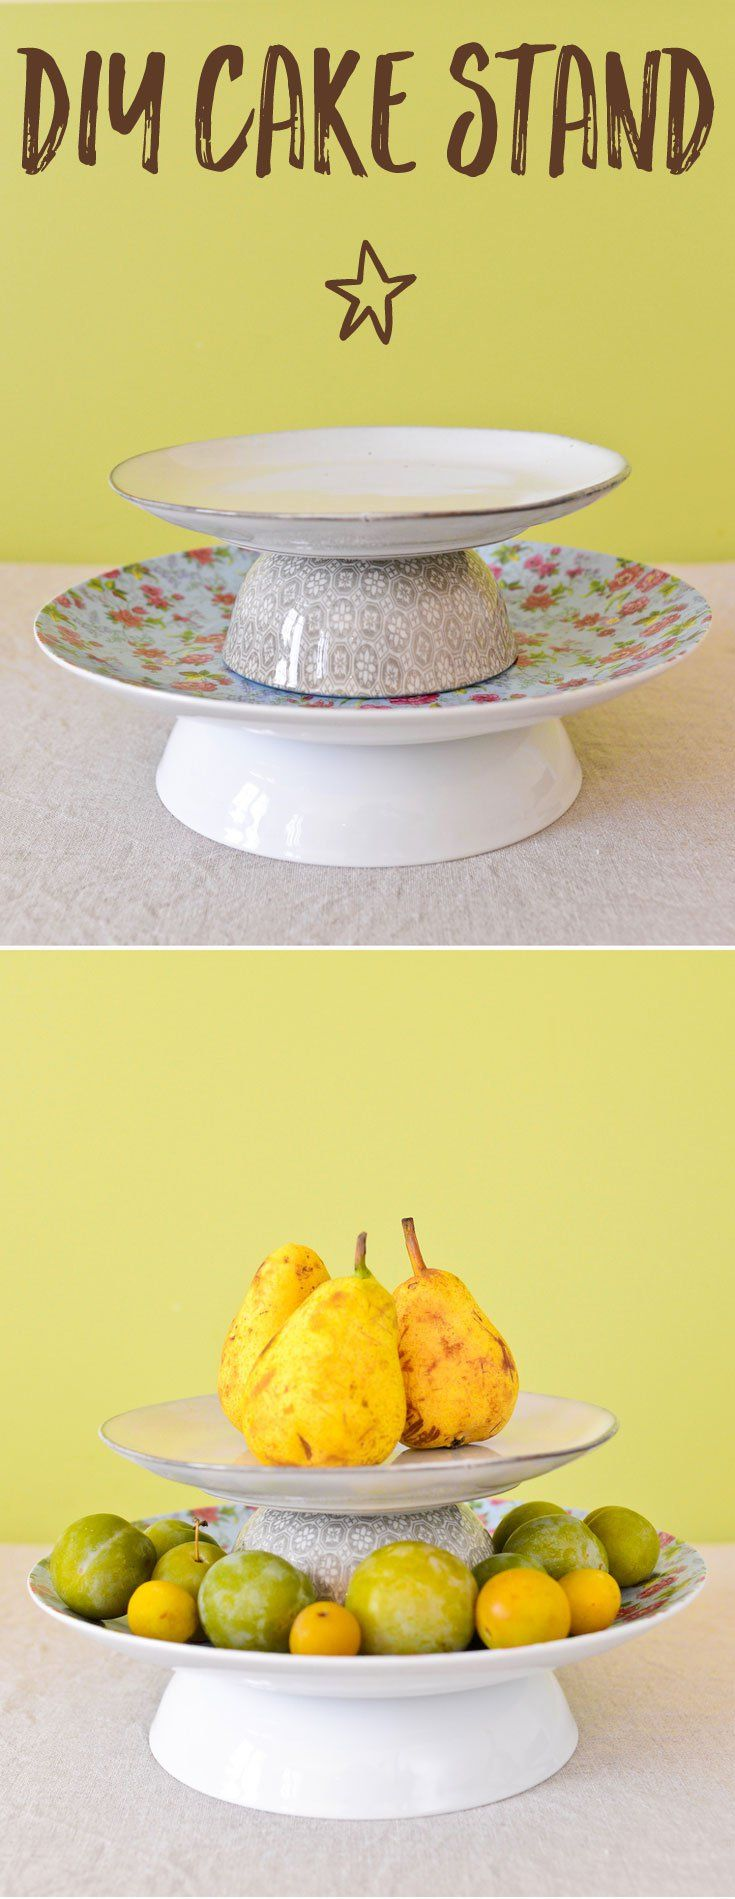 A genius trick to make a DIY cake stand out of ordinary dinner plates and bowls. Transform your buffet tables and bring levity to your kitchen counter!